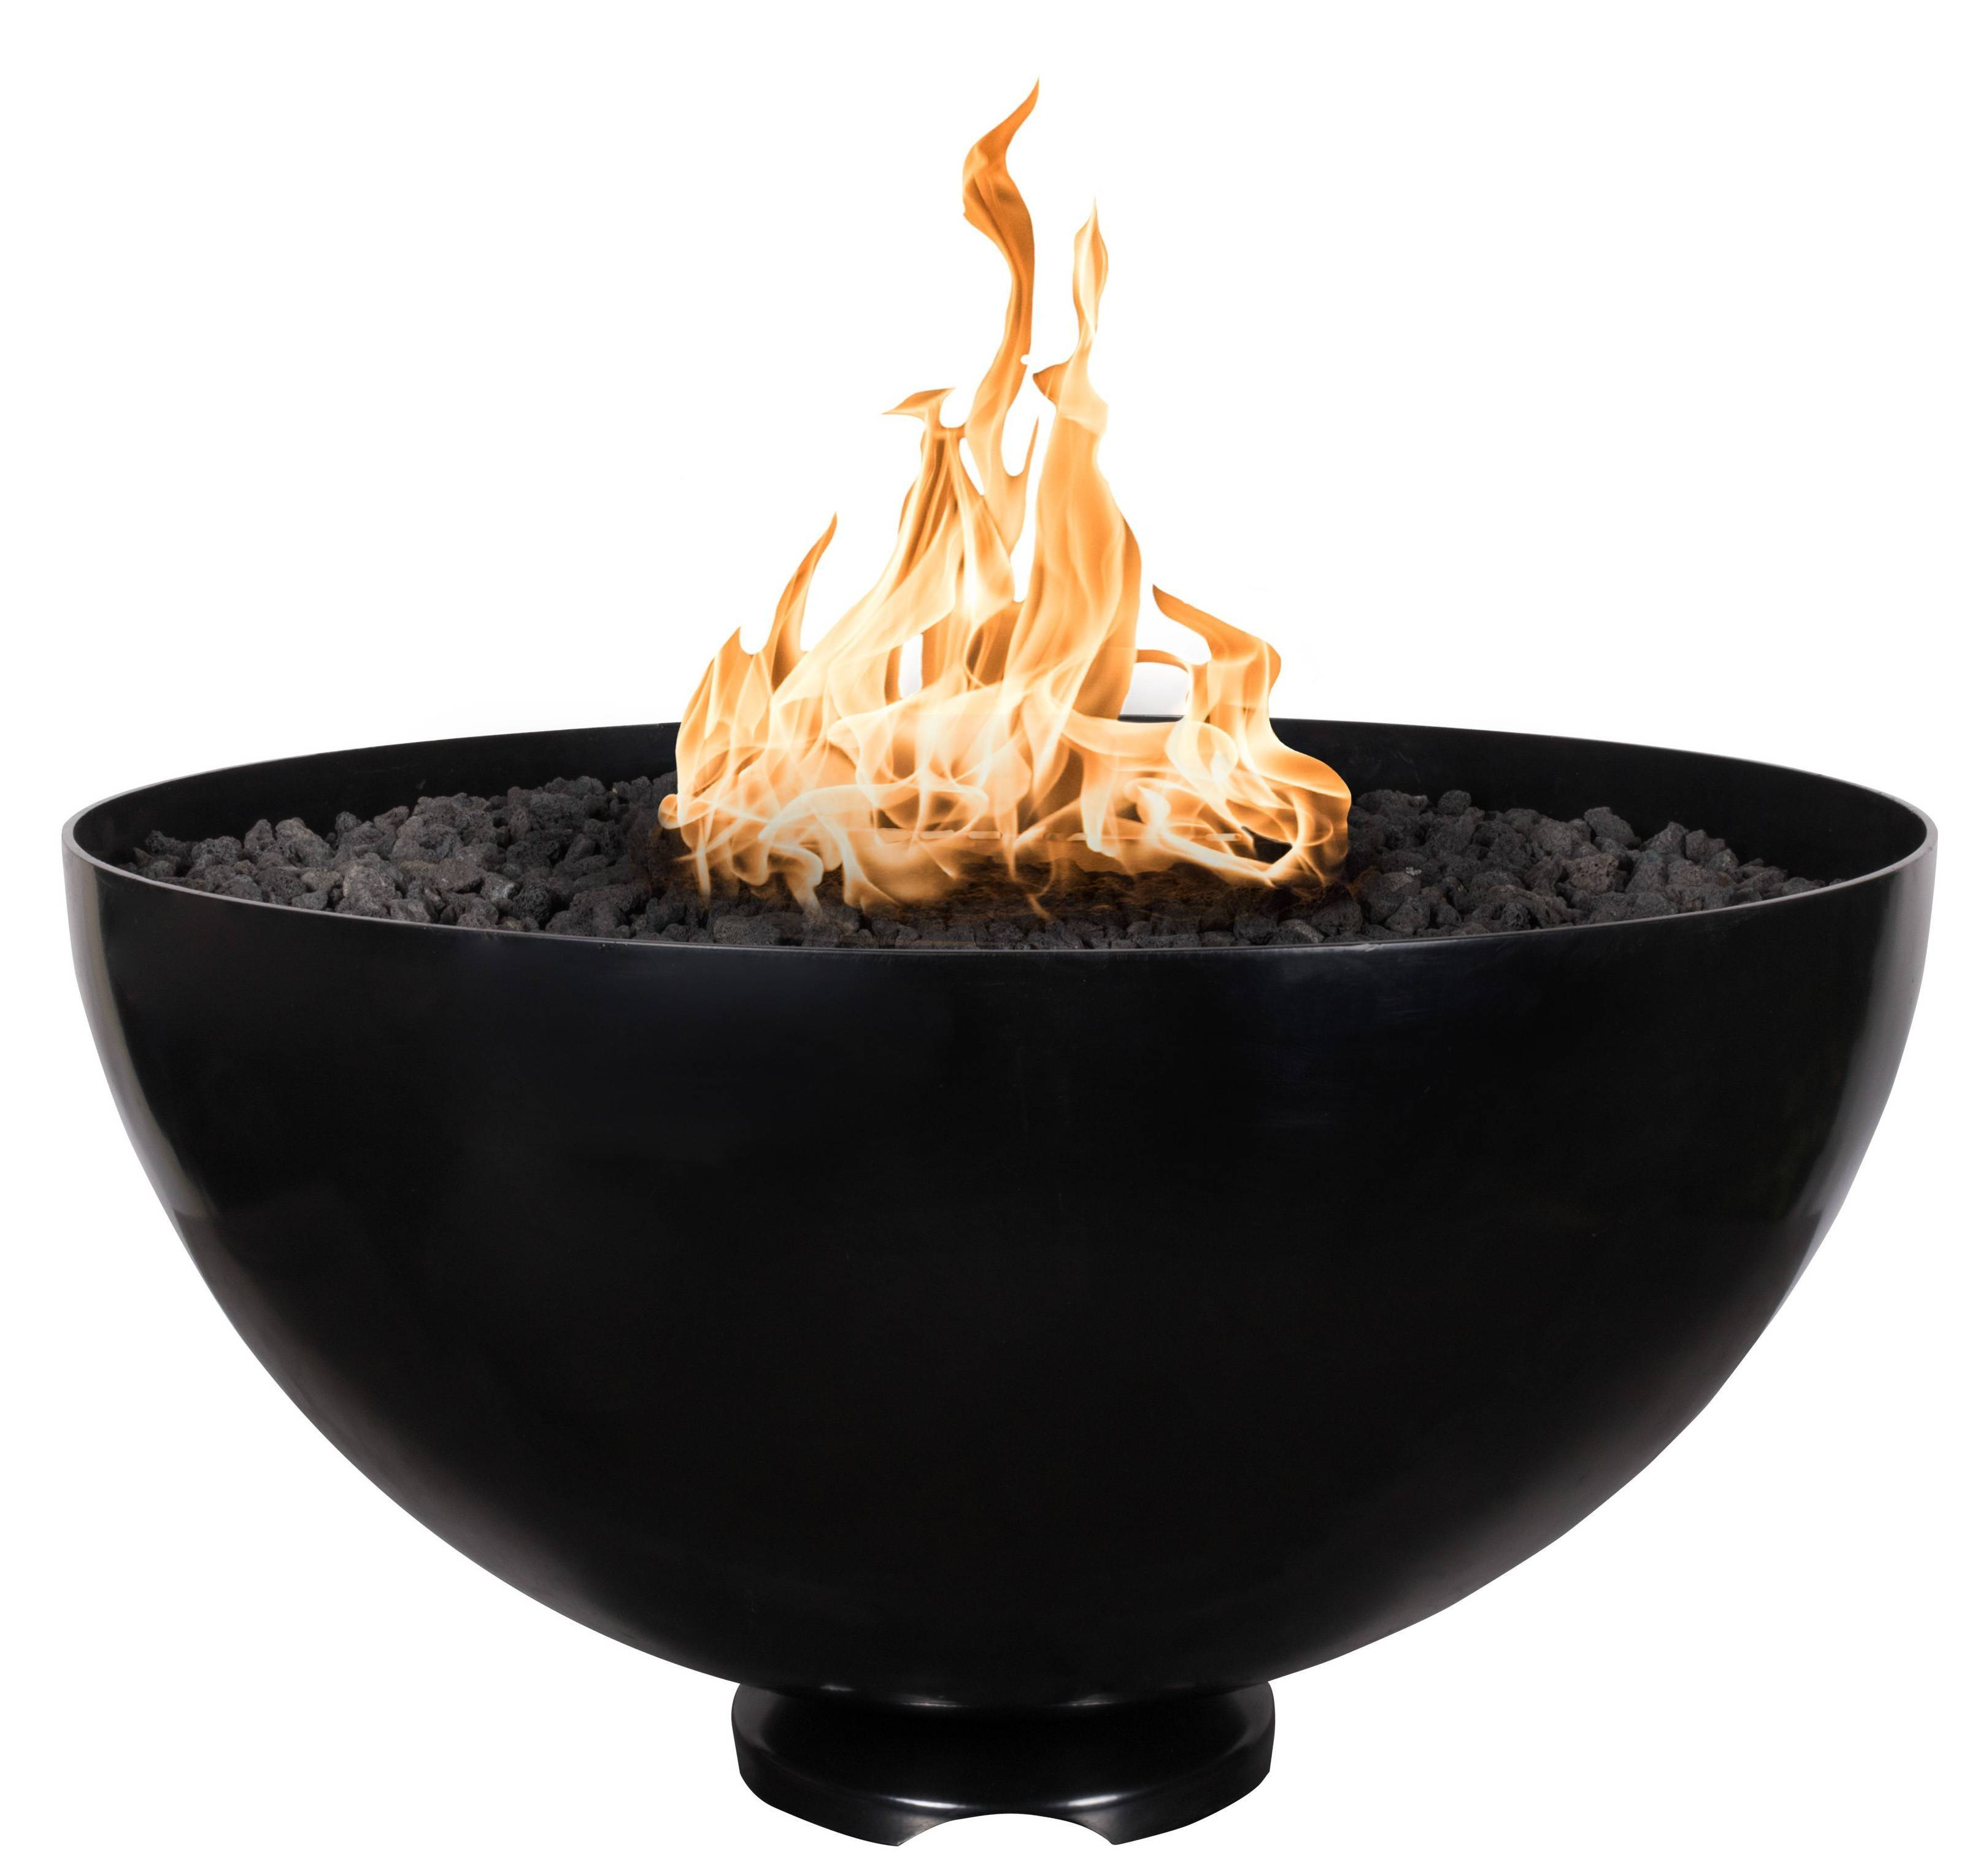 Steel Fire Bowl - Hemi | Starting at